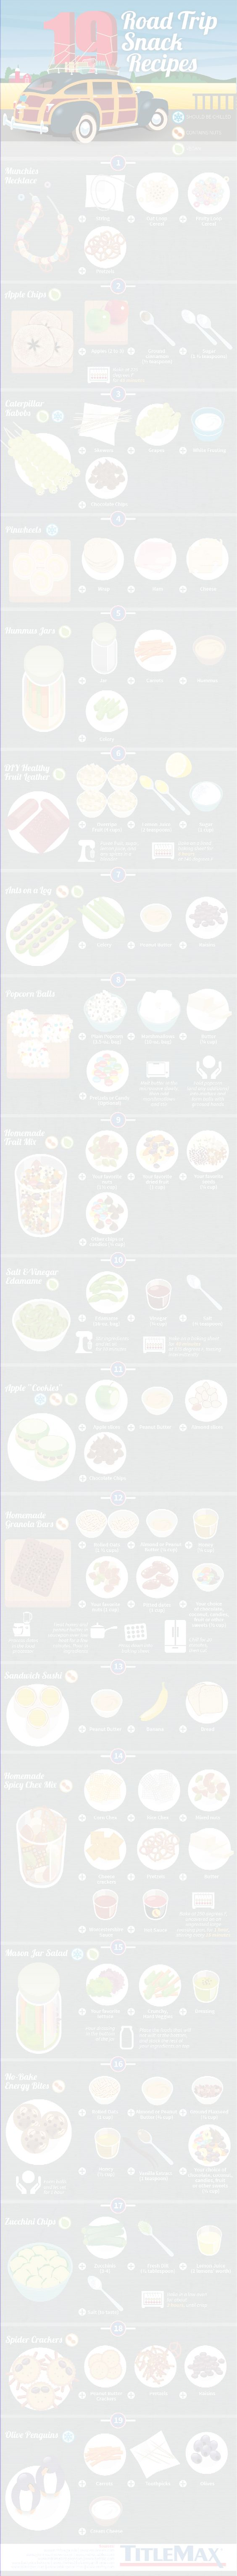 19 Road Trip Snack Recipes Infographic